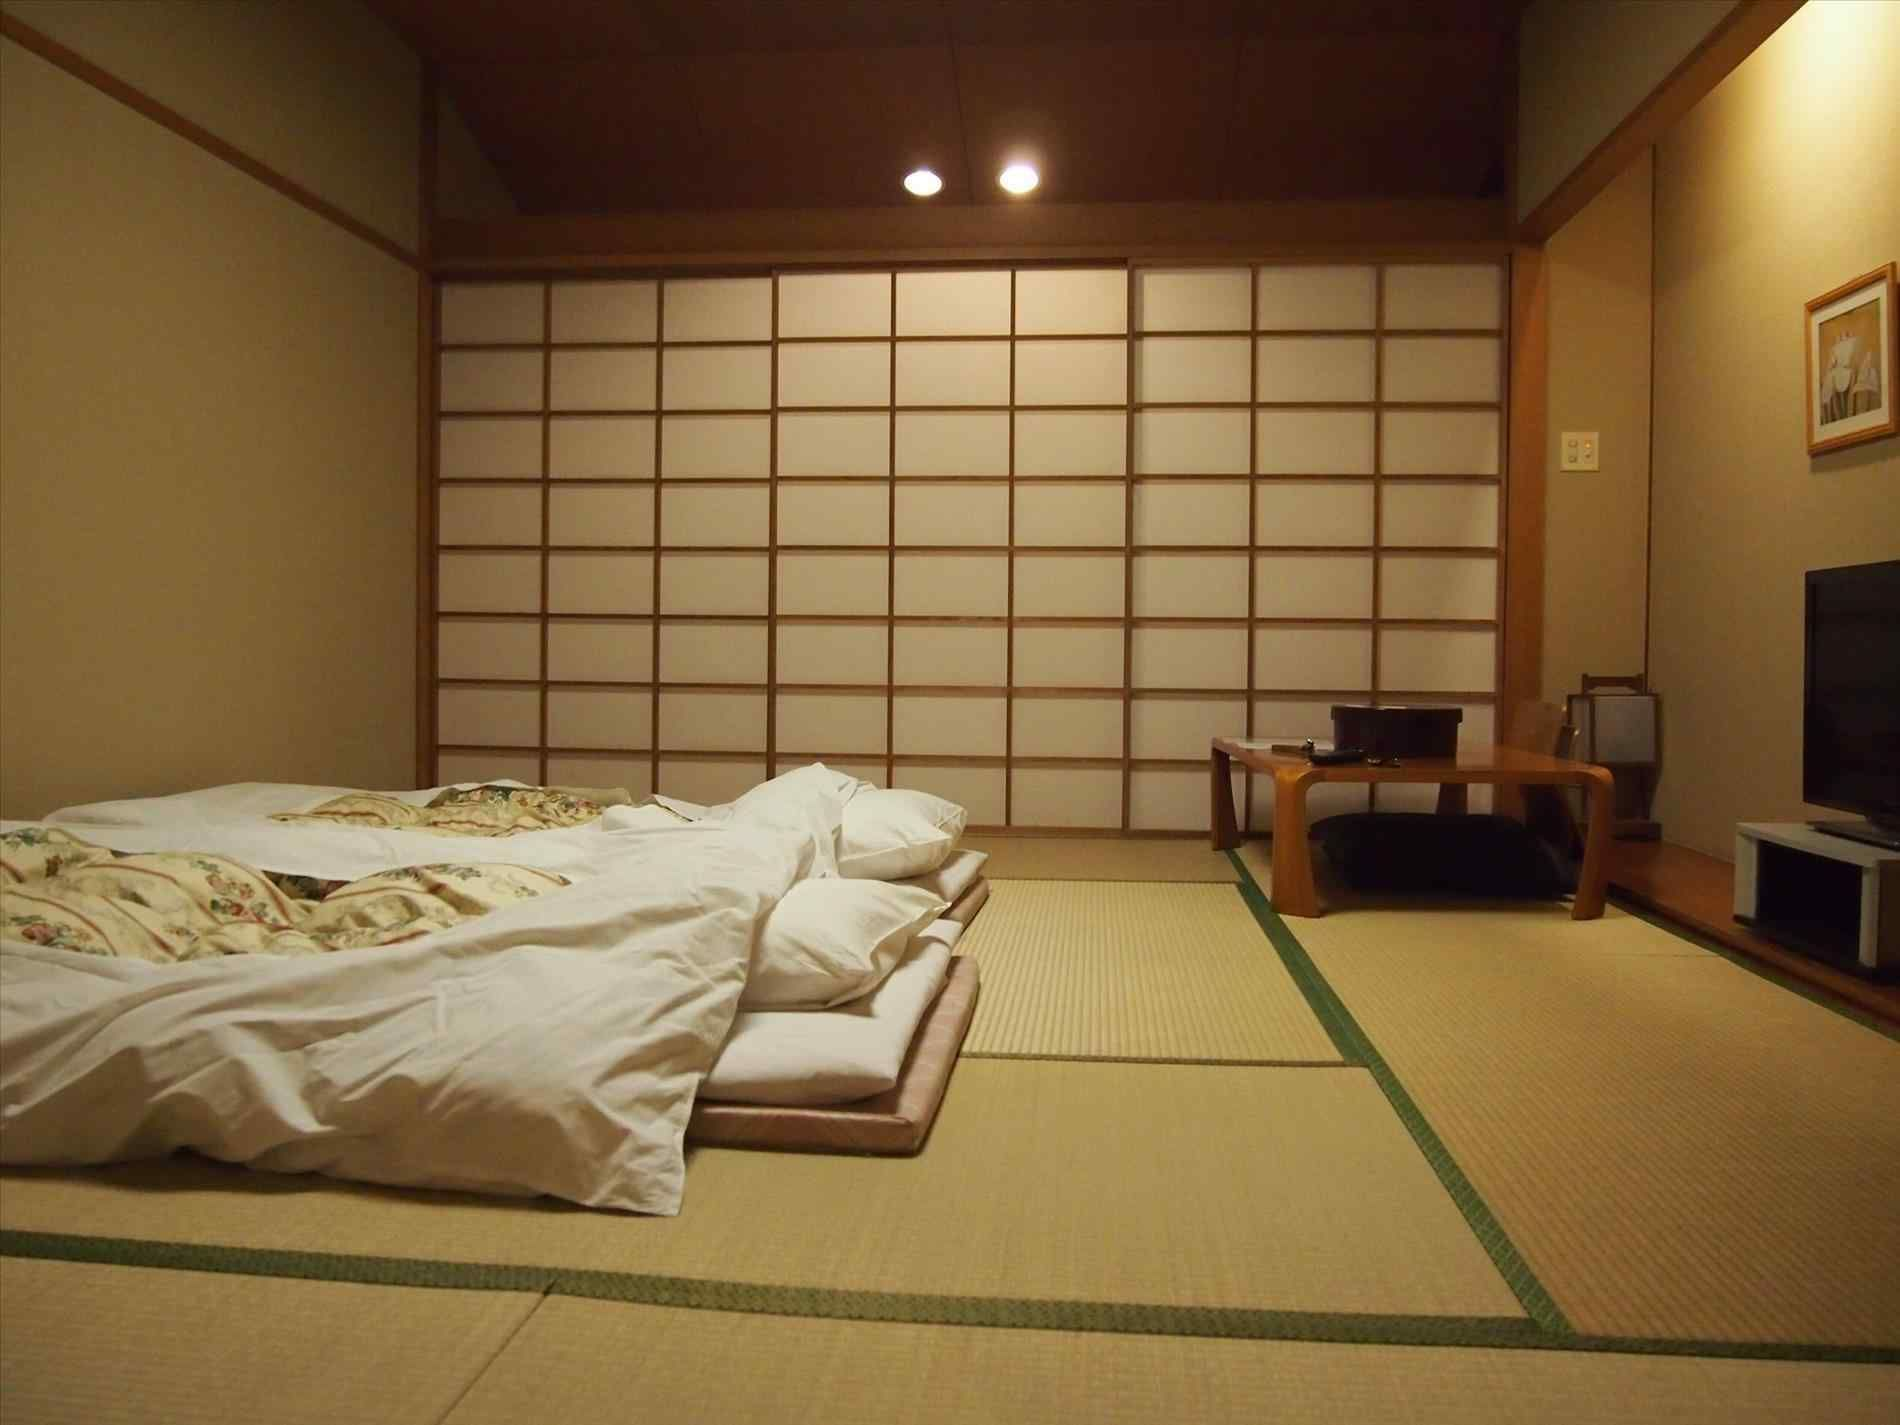 10 Beautiful Japanese Style Flooring For Your Home Inspiration